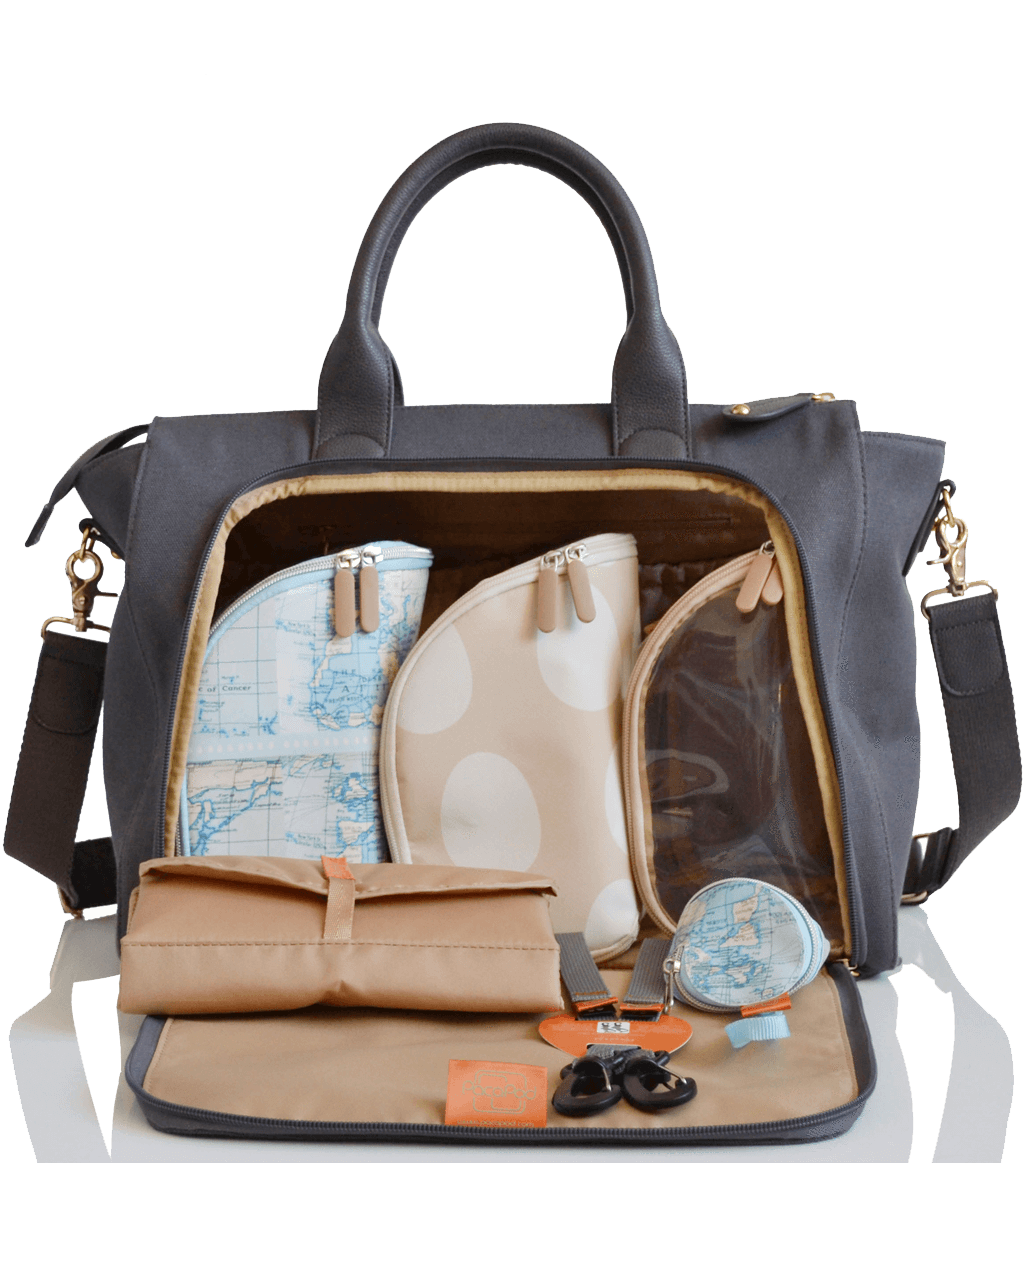 4b022674a5fdd Croyde - pewter Baby Changing Mat, Changing Bag, Traveling With Baby, Pewter